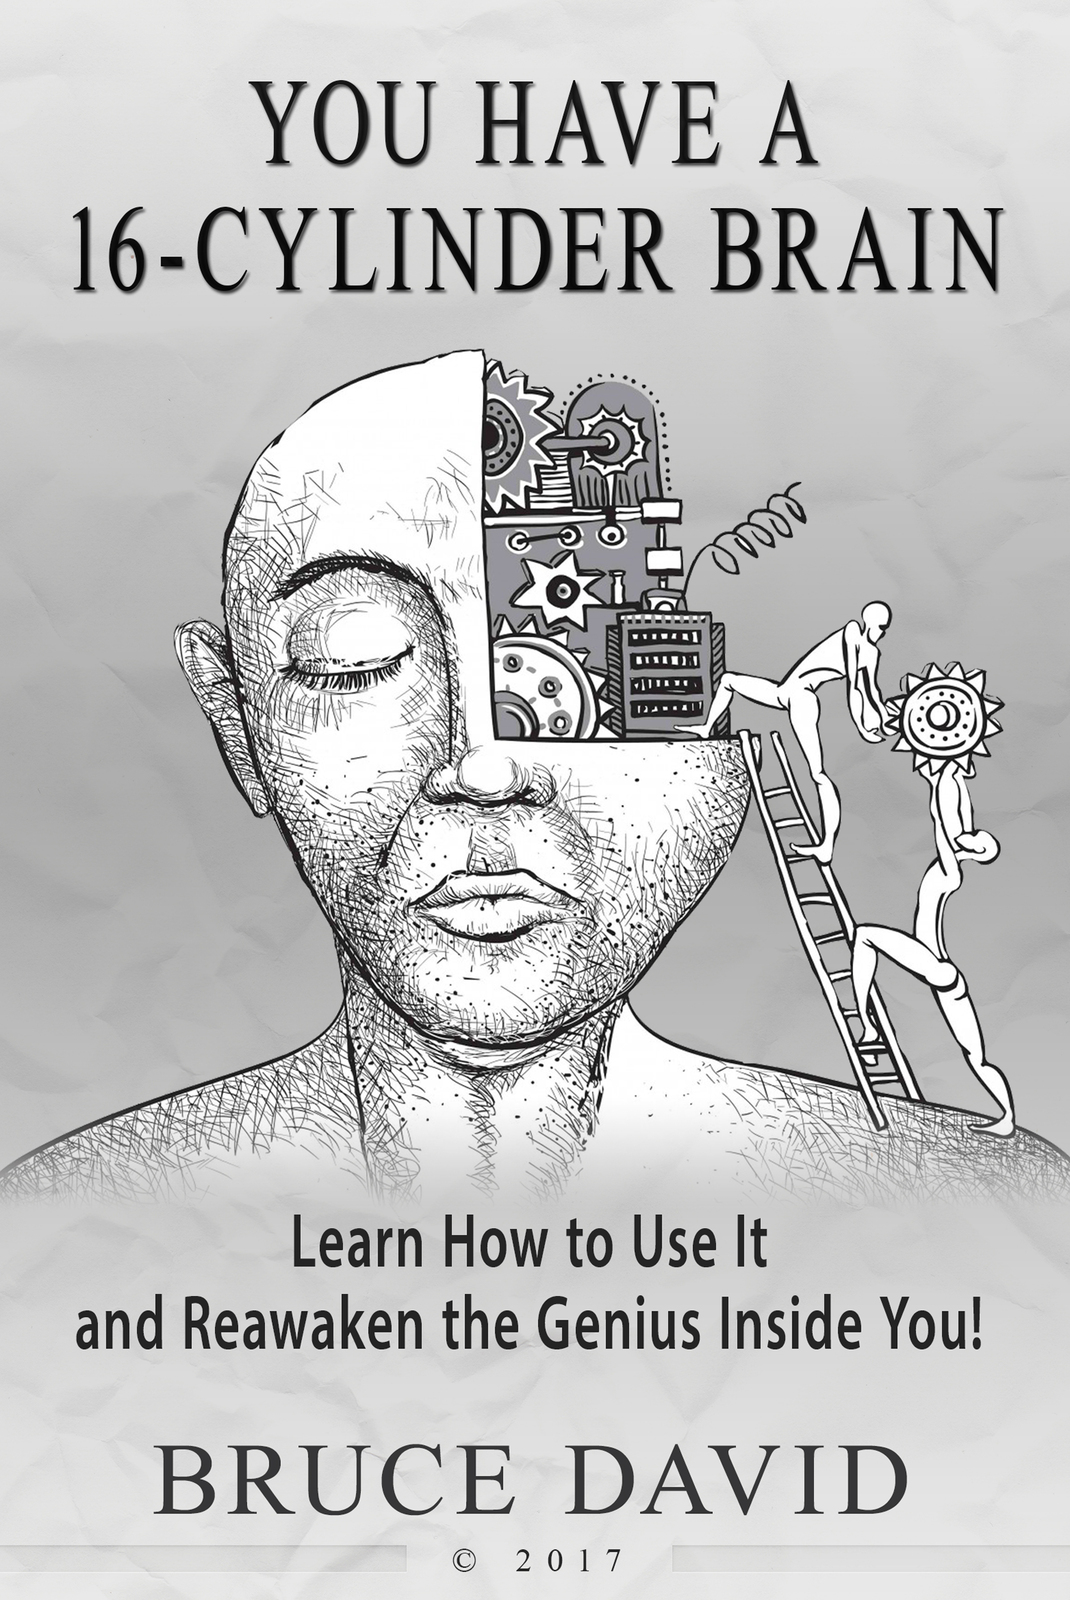 You Have a 16-Cylinder Brain-Learn How to Use it & Re-Awaken the Genius Inside